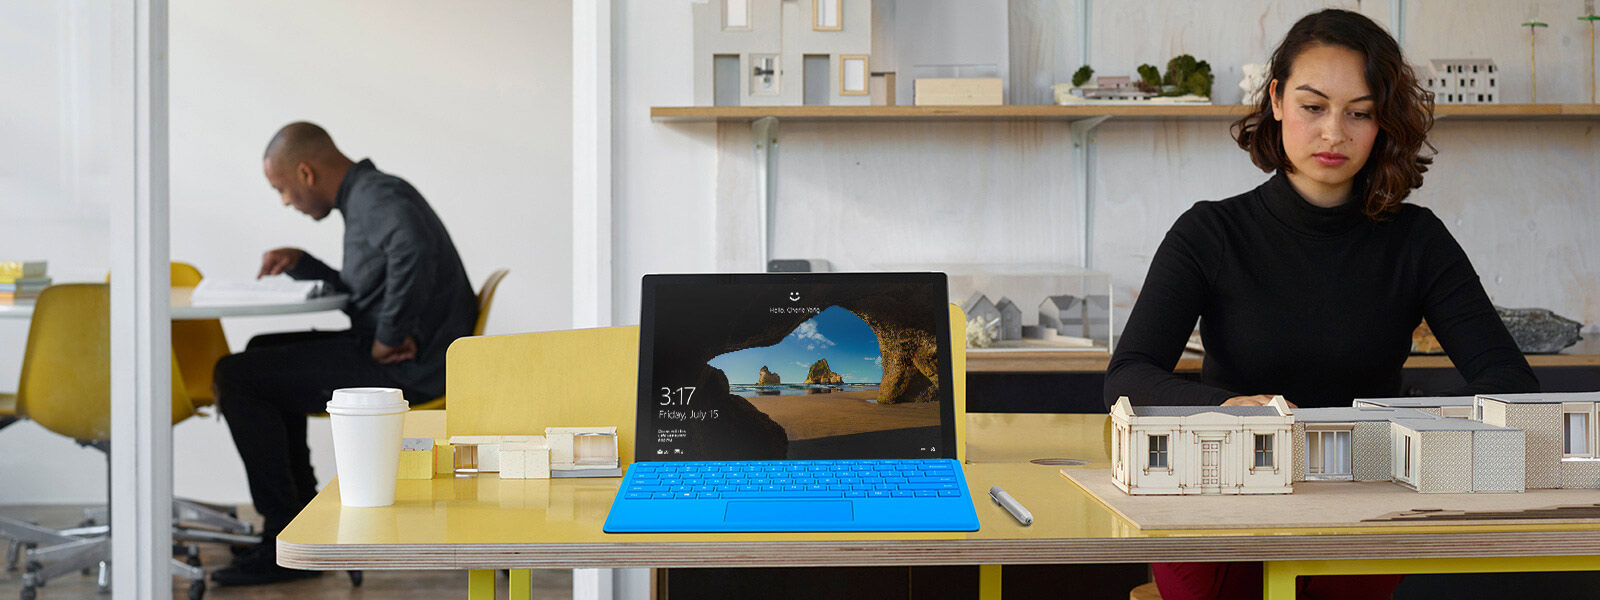 Surface Pro 4 with Surface Pen on a table.